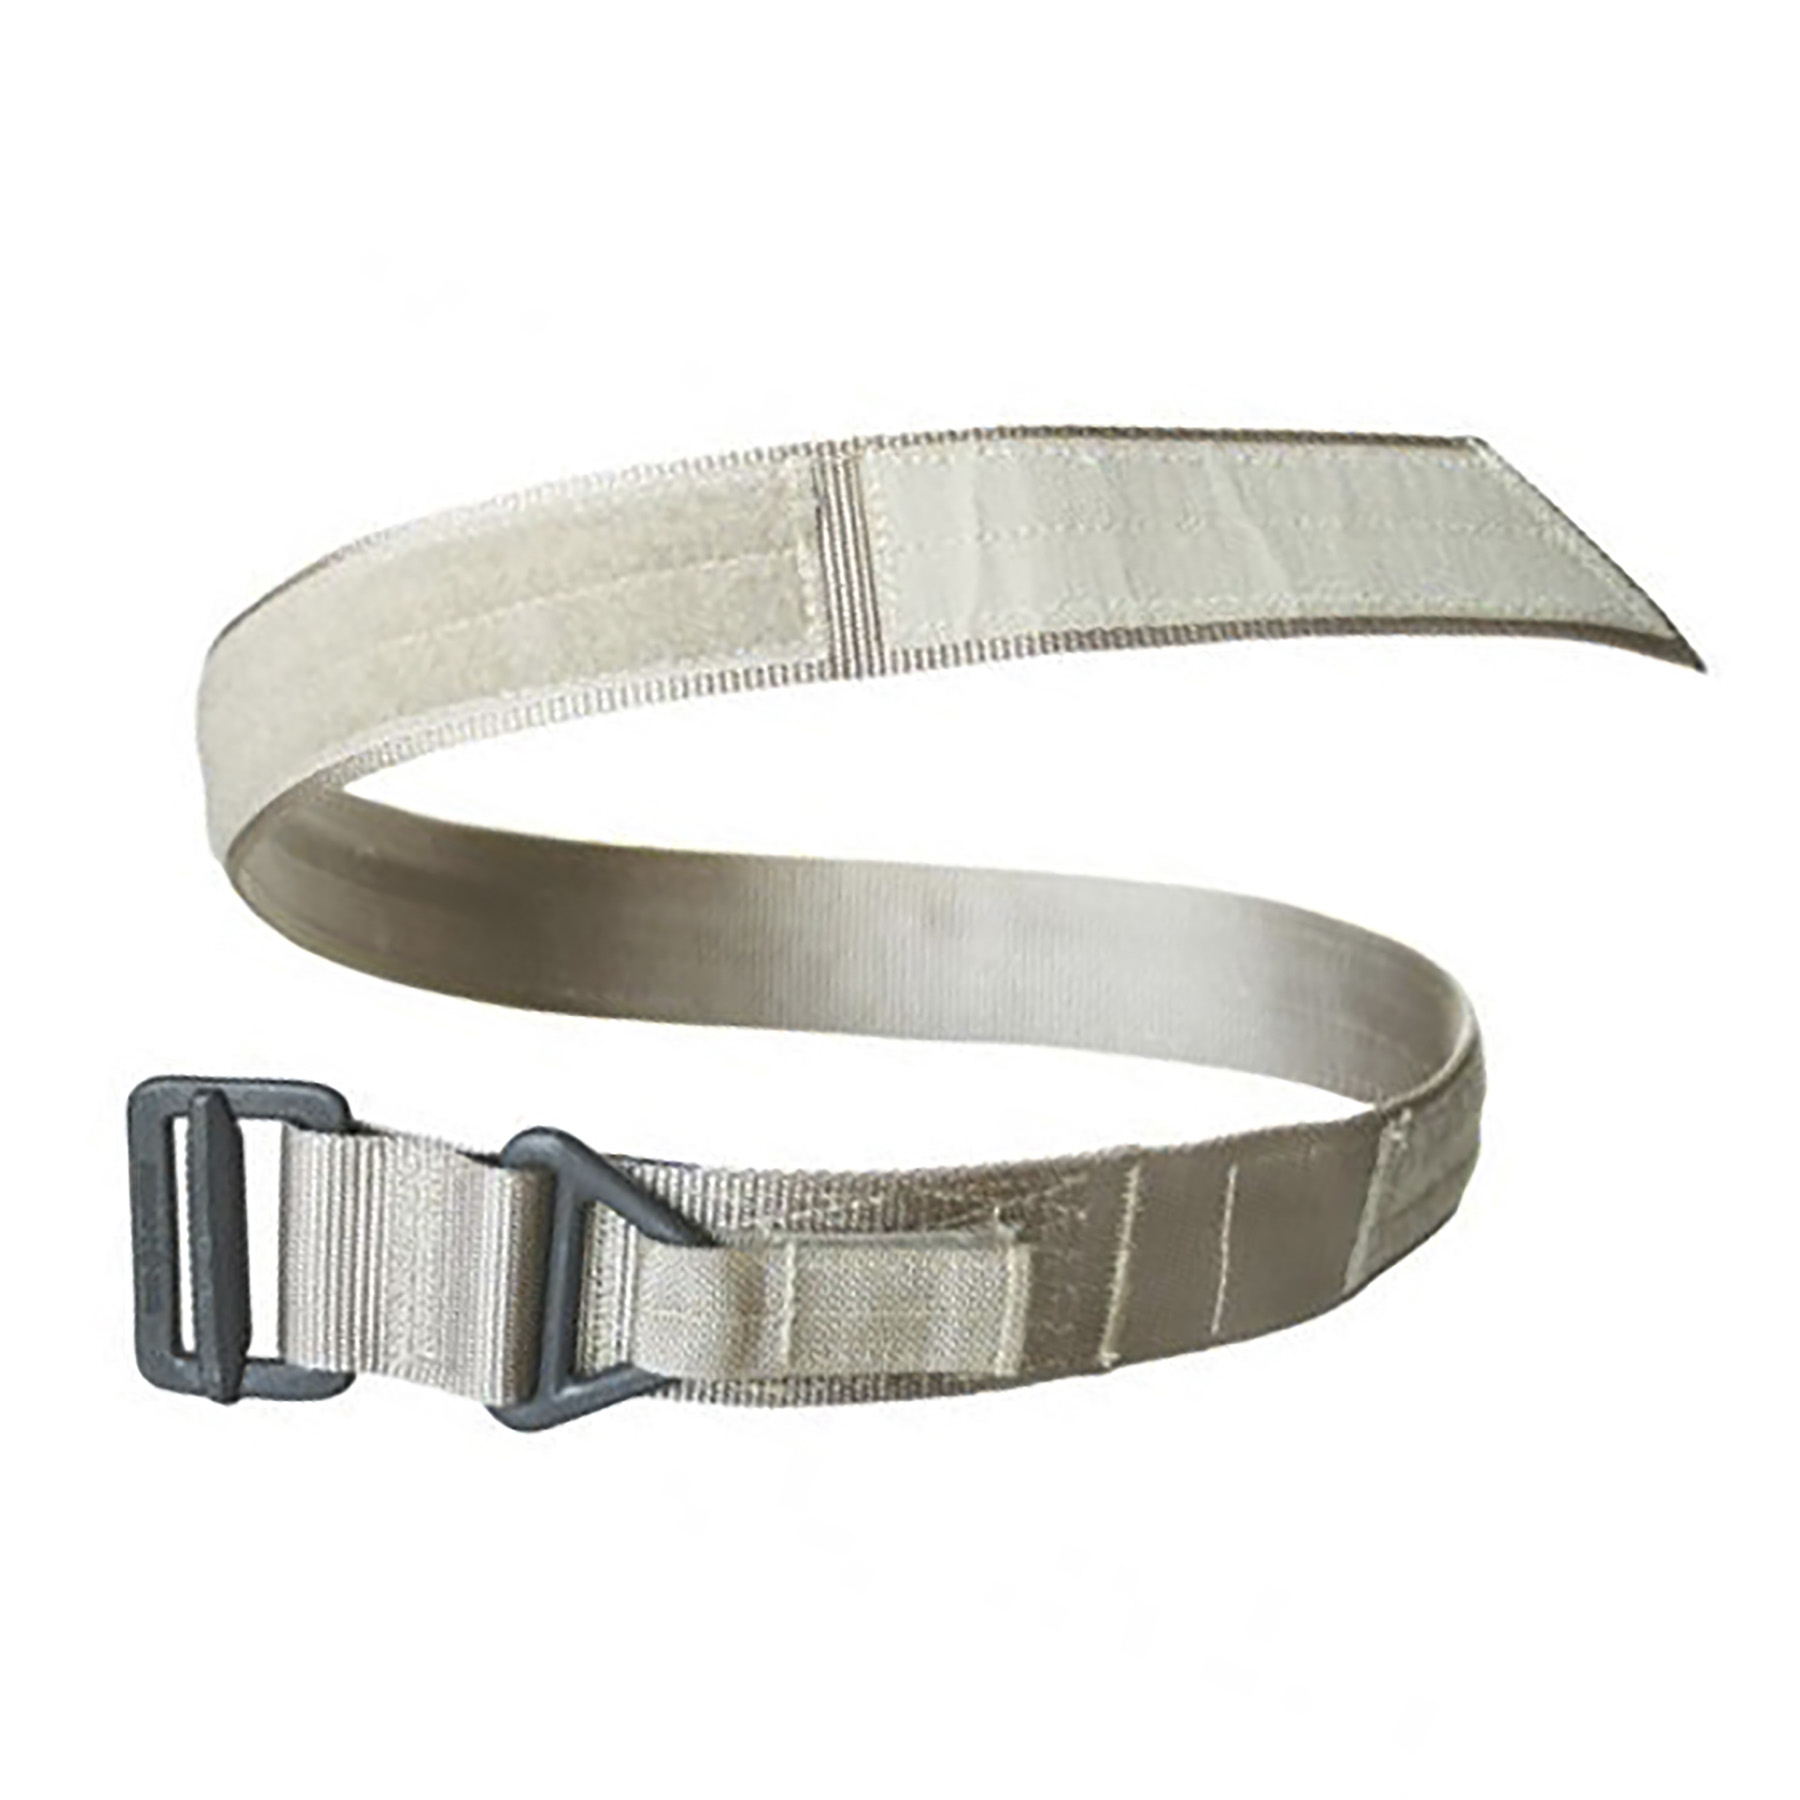 Spec-Ops Rigger's Belt 1.75 inch thick (24-34 inches)